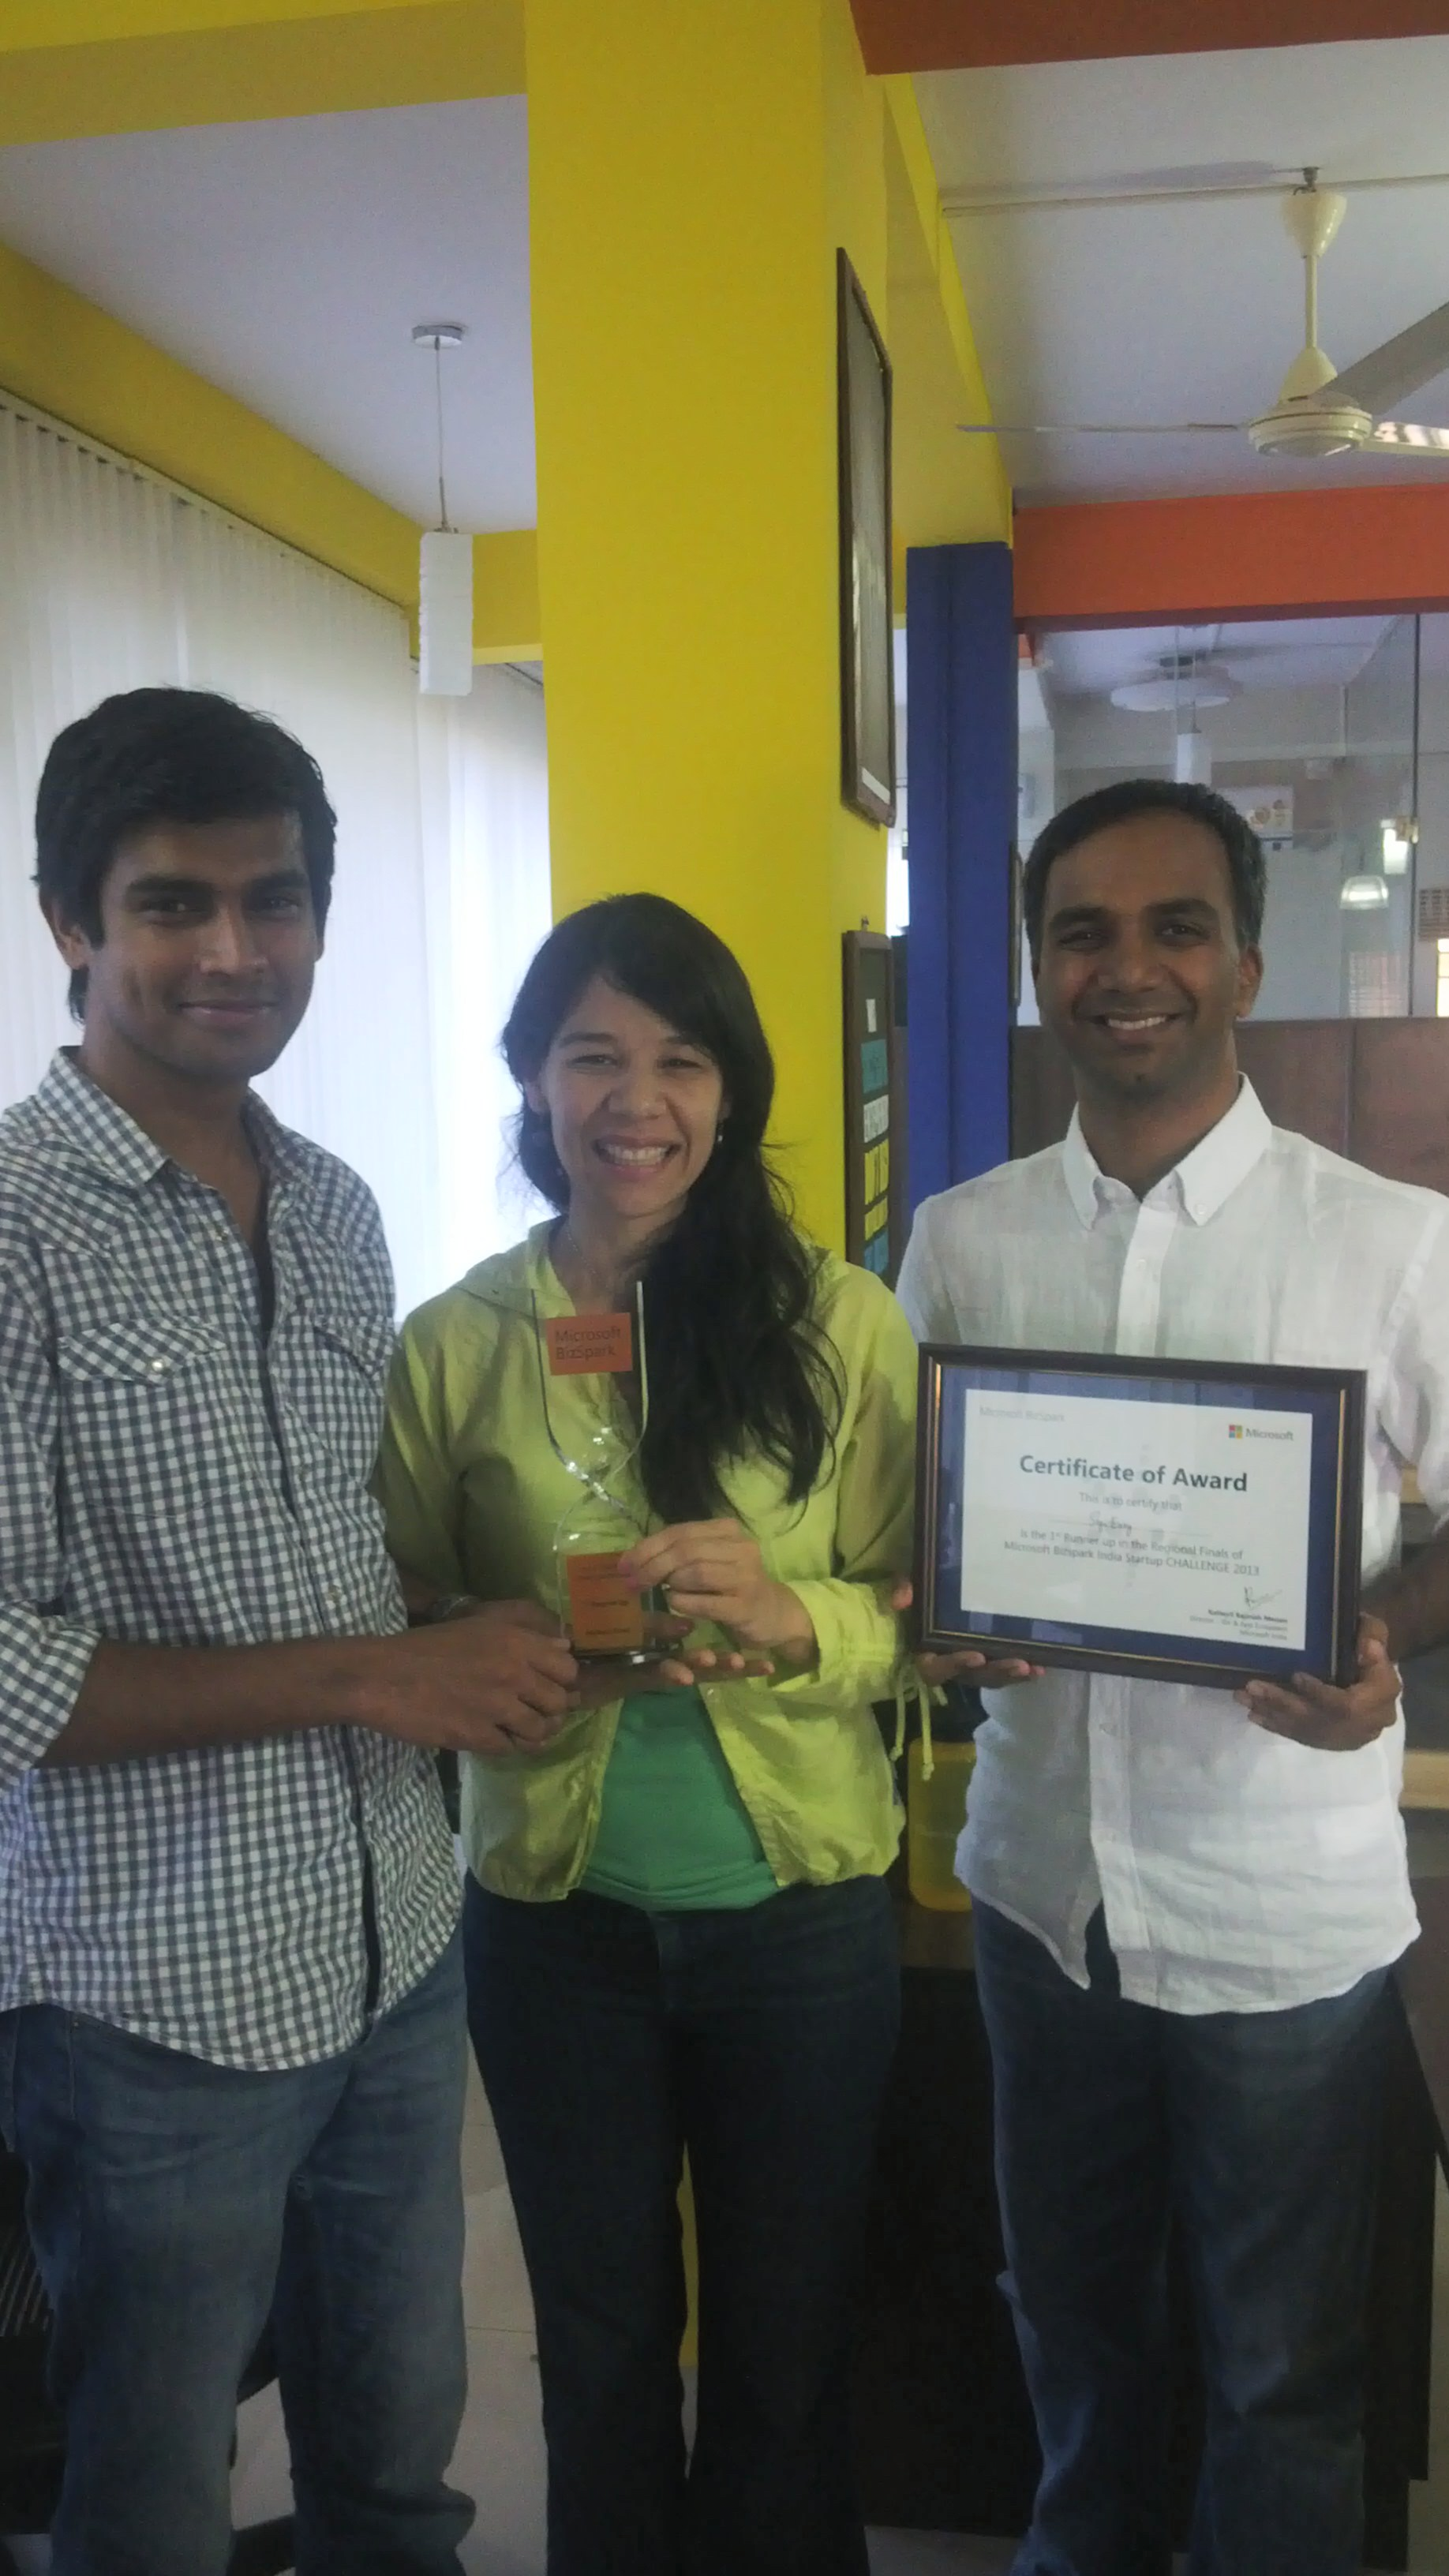 The SignEasy Team in Bangalore